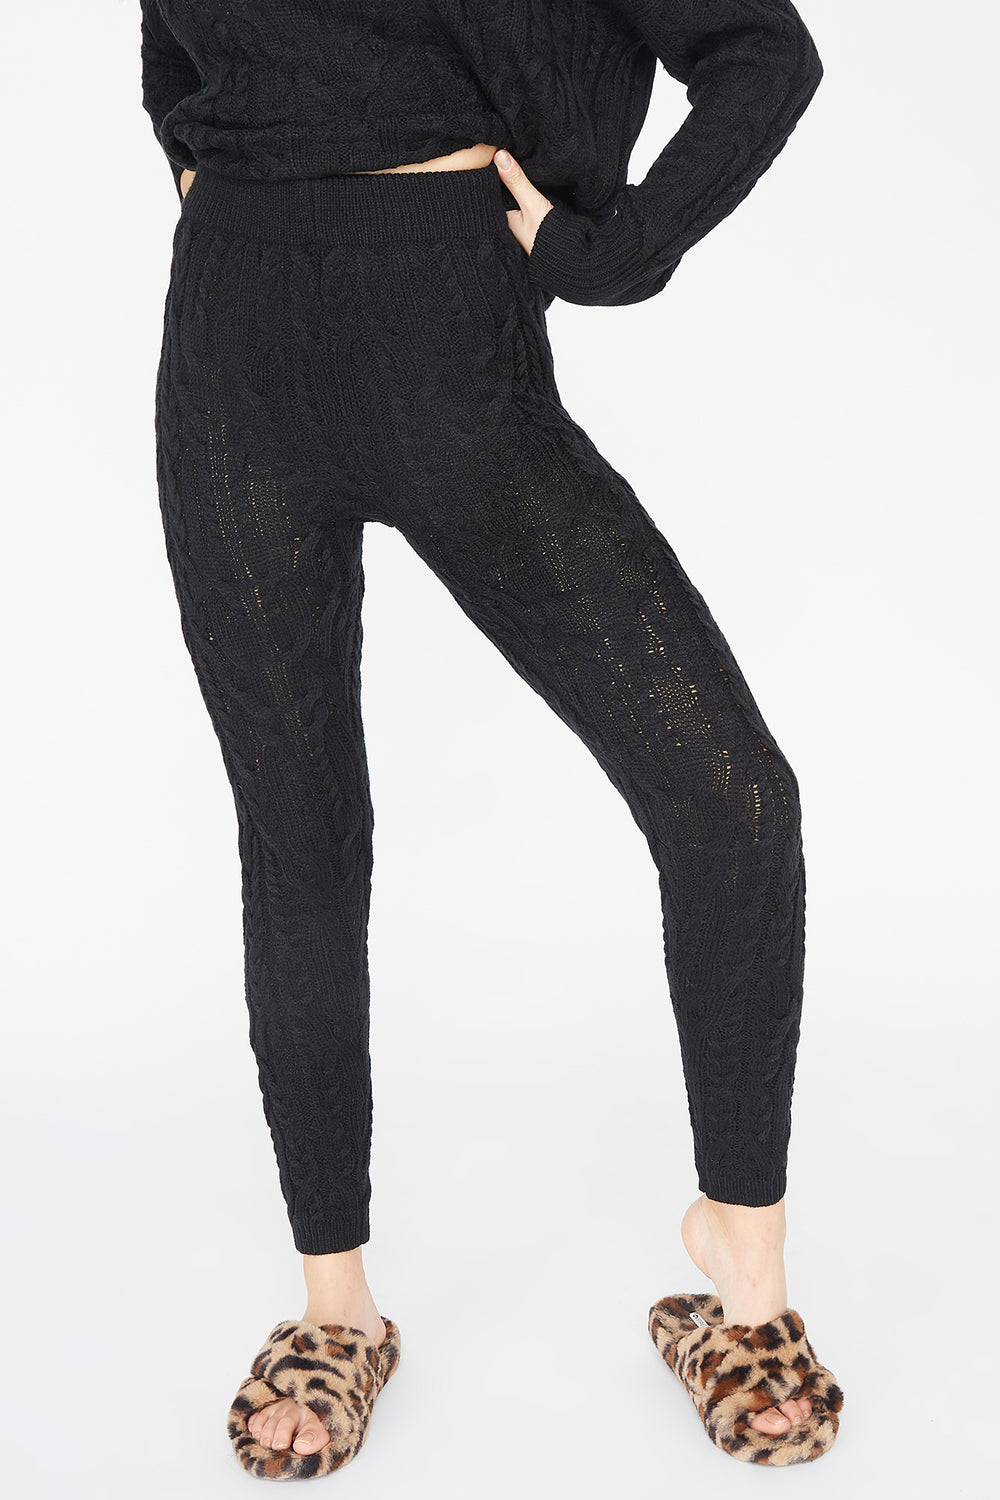 High-Rise Cable Knit Legging Black